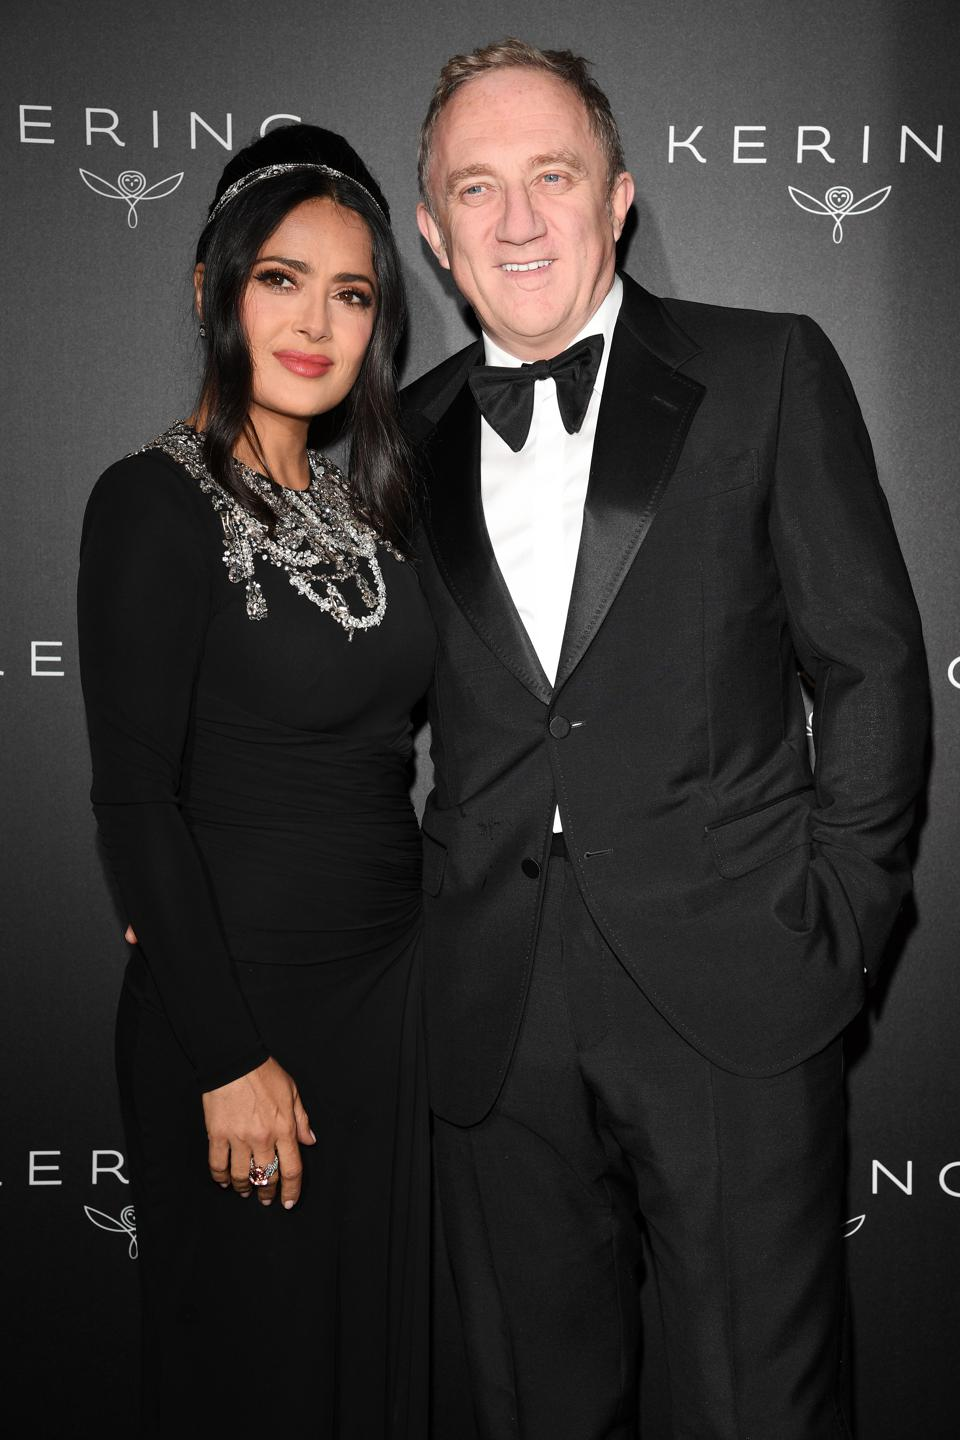 Kering And Cannes Film Festival Official Dinner - Salma Hayek Francois-Henri Pinault